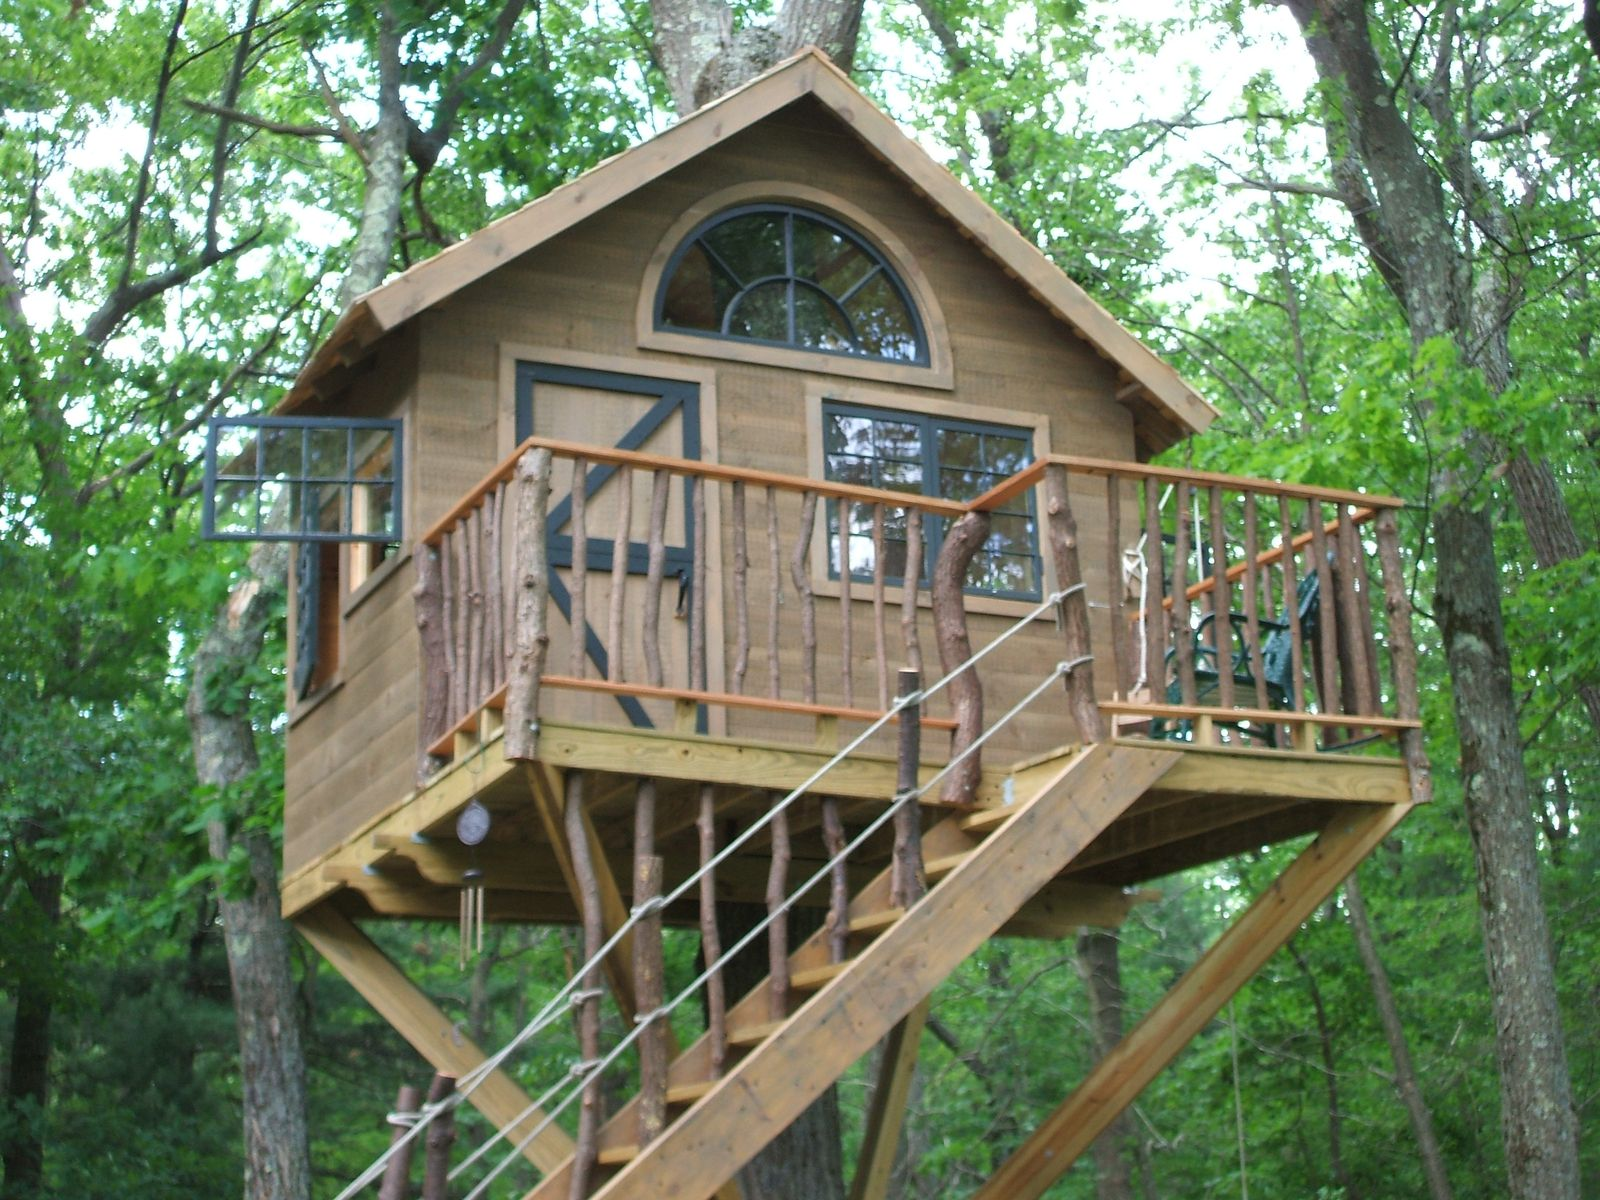 handmade whimsical treehouse by wooden hammer llc